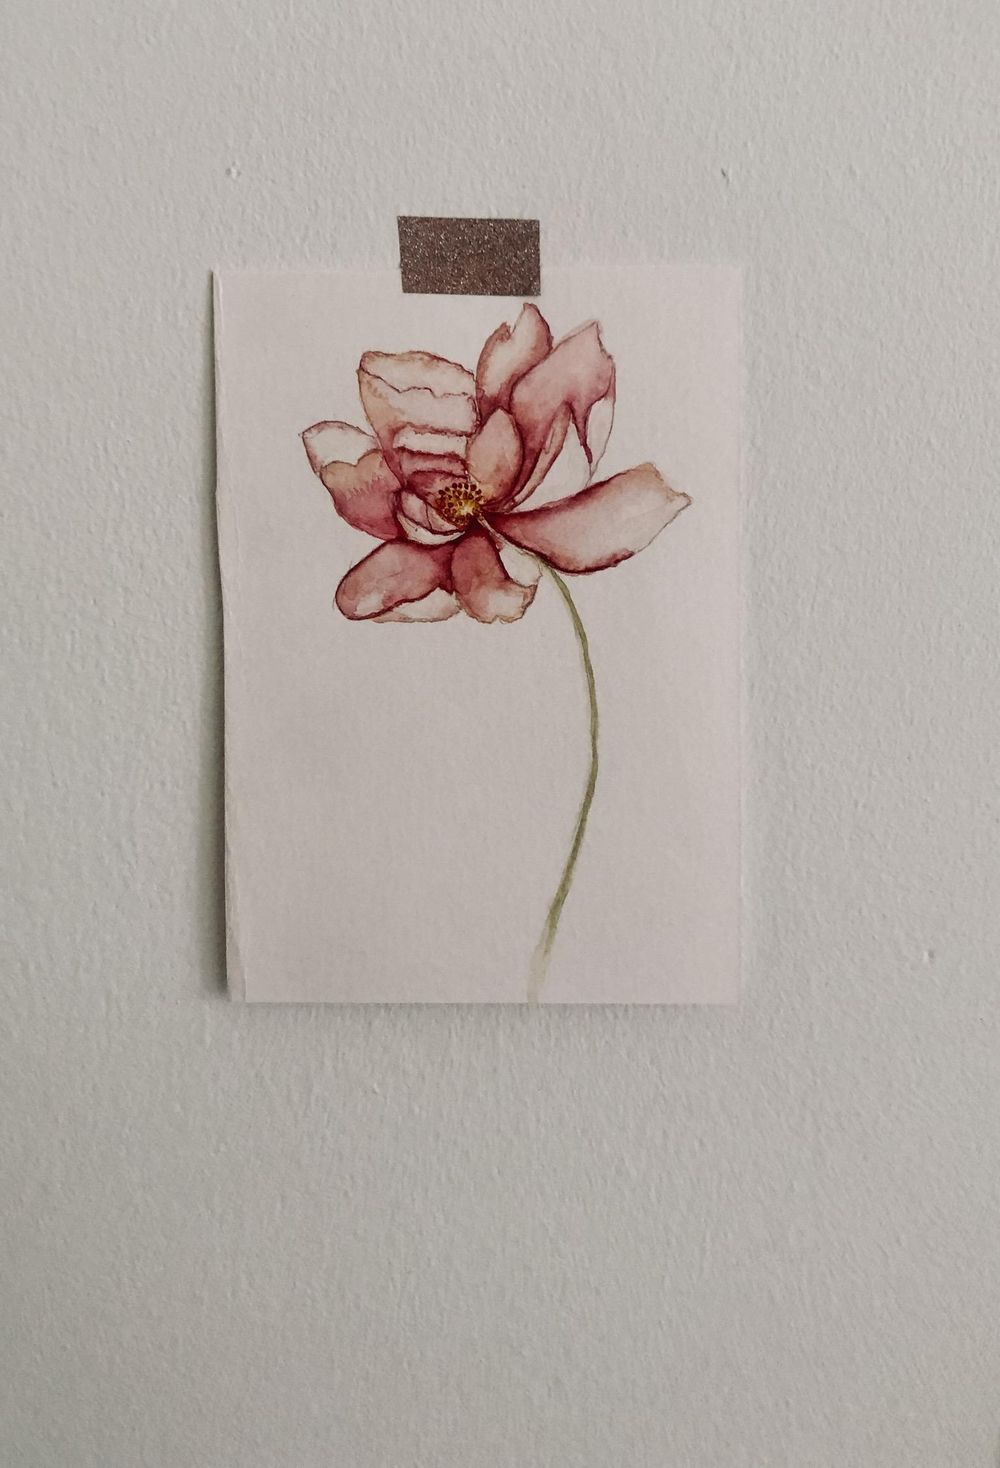 Peony - image 1 - student project